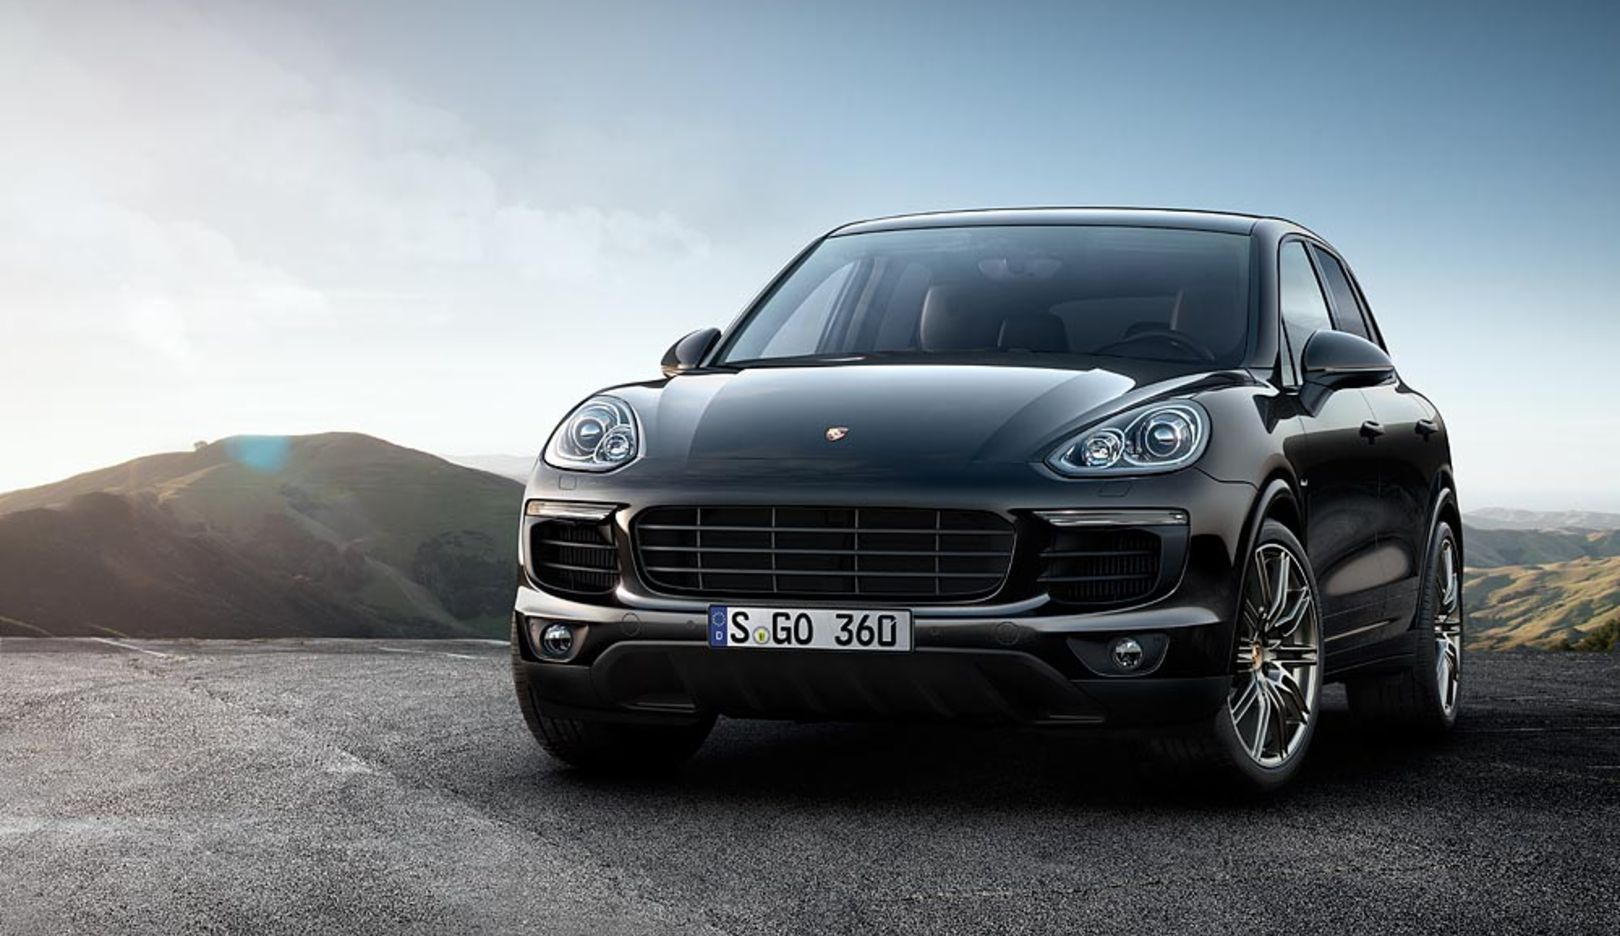 Porsche And Diesel Questions And Answers